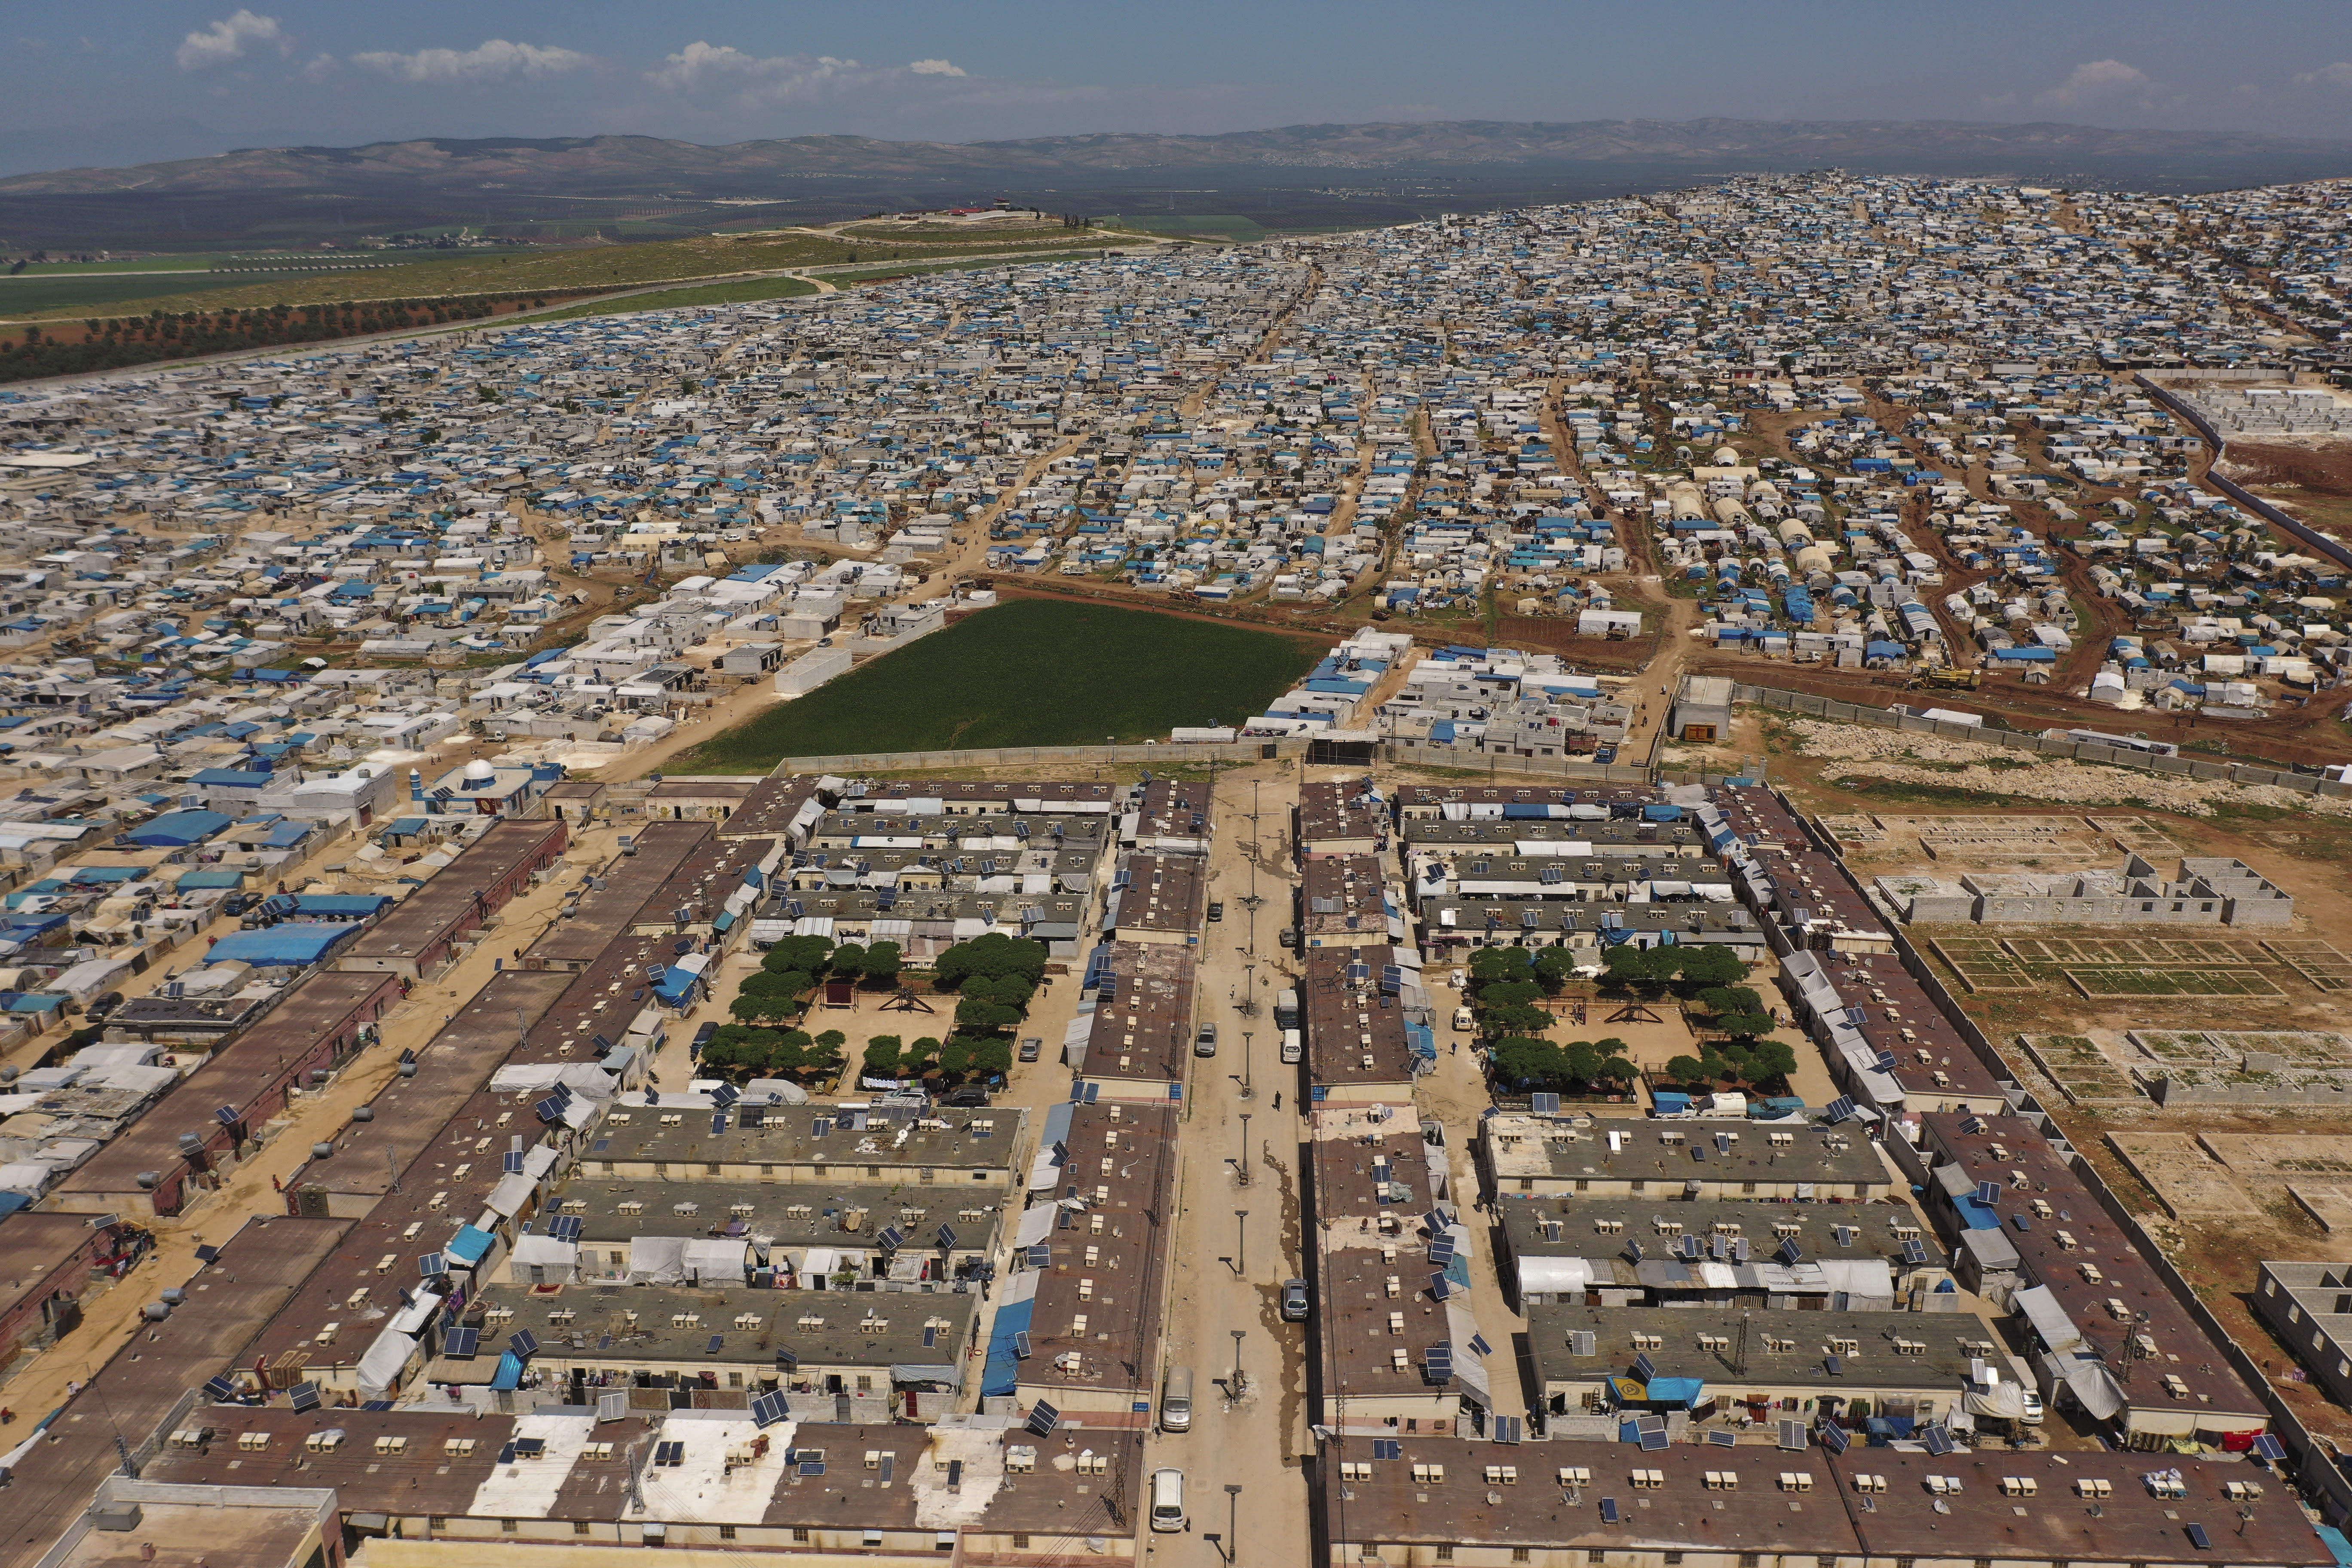 FILE - In this April 19, 2020 photo file photo, shows a large refugee camp on the Syrian side of the border with Turkey, near the town of Atma, in Idlib province, Syria. Over the last two days, members of the UN Security Council have been haggling over cross-border aid delivery to Syria, with Russia, a major ally of the Syria government, working to reduce the delivery of U.N. humanitarian aid to Syria's last rebel-held northwest down from two crossings to just one. A final vote is expected Friday, July 10, 2020 as western countries push on a new resolution to keep the two crossings open for six months, instead of a year. (AP Photo/Ghaith Alsayed, File)